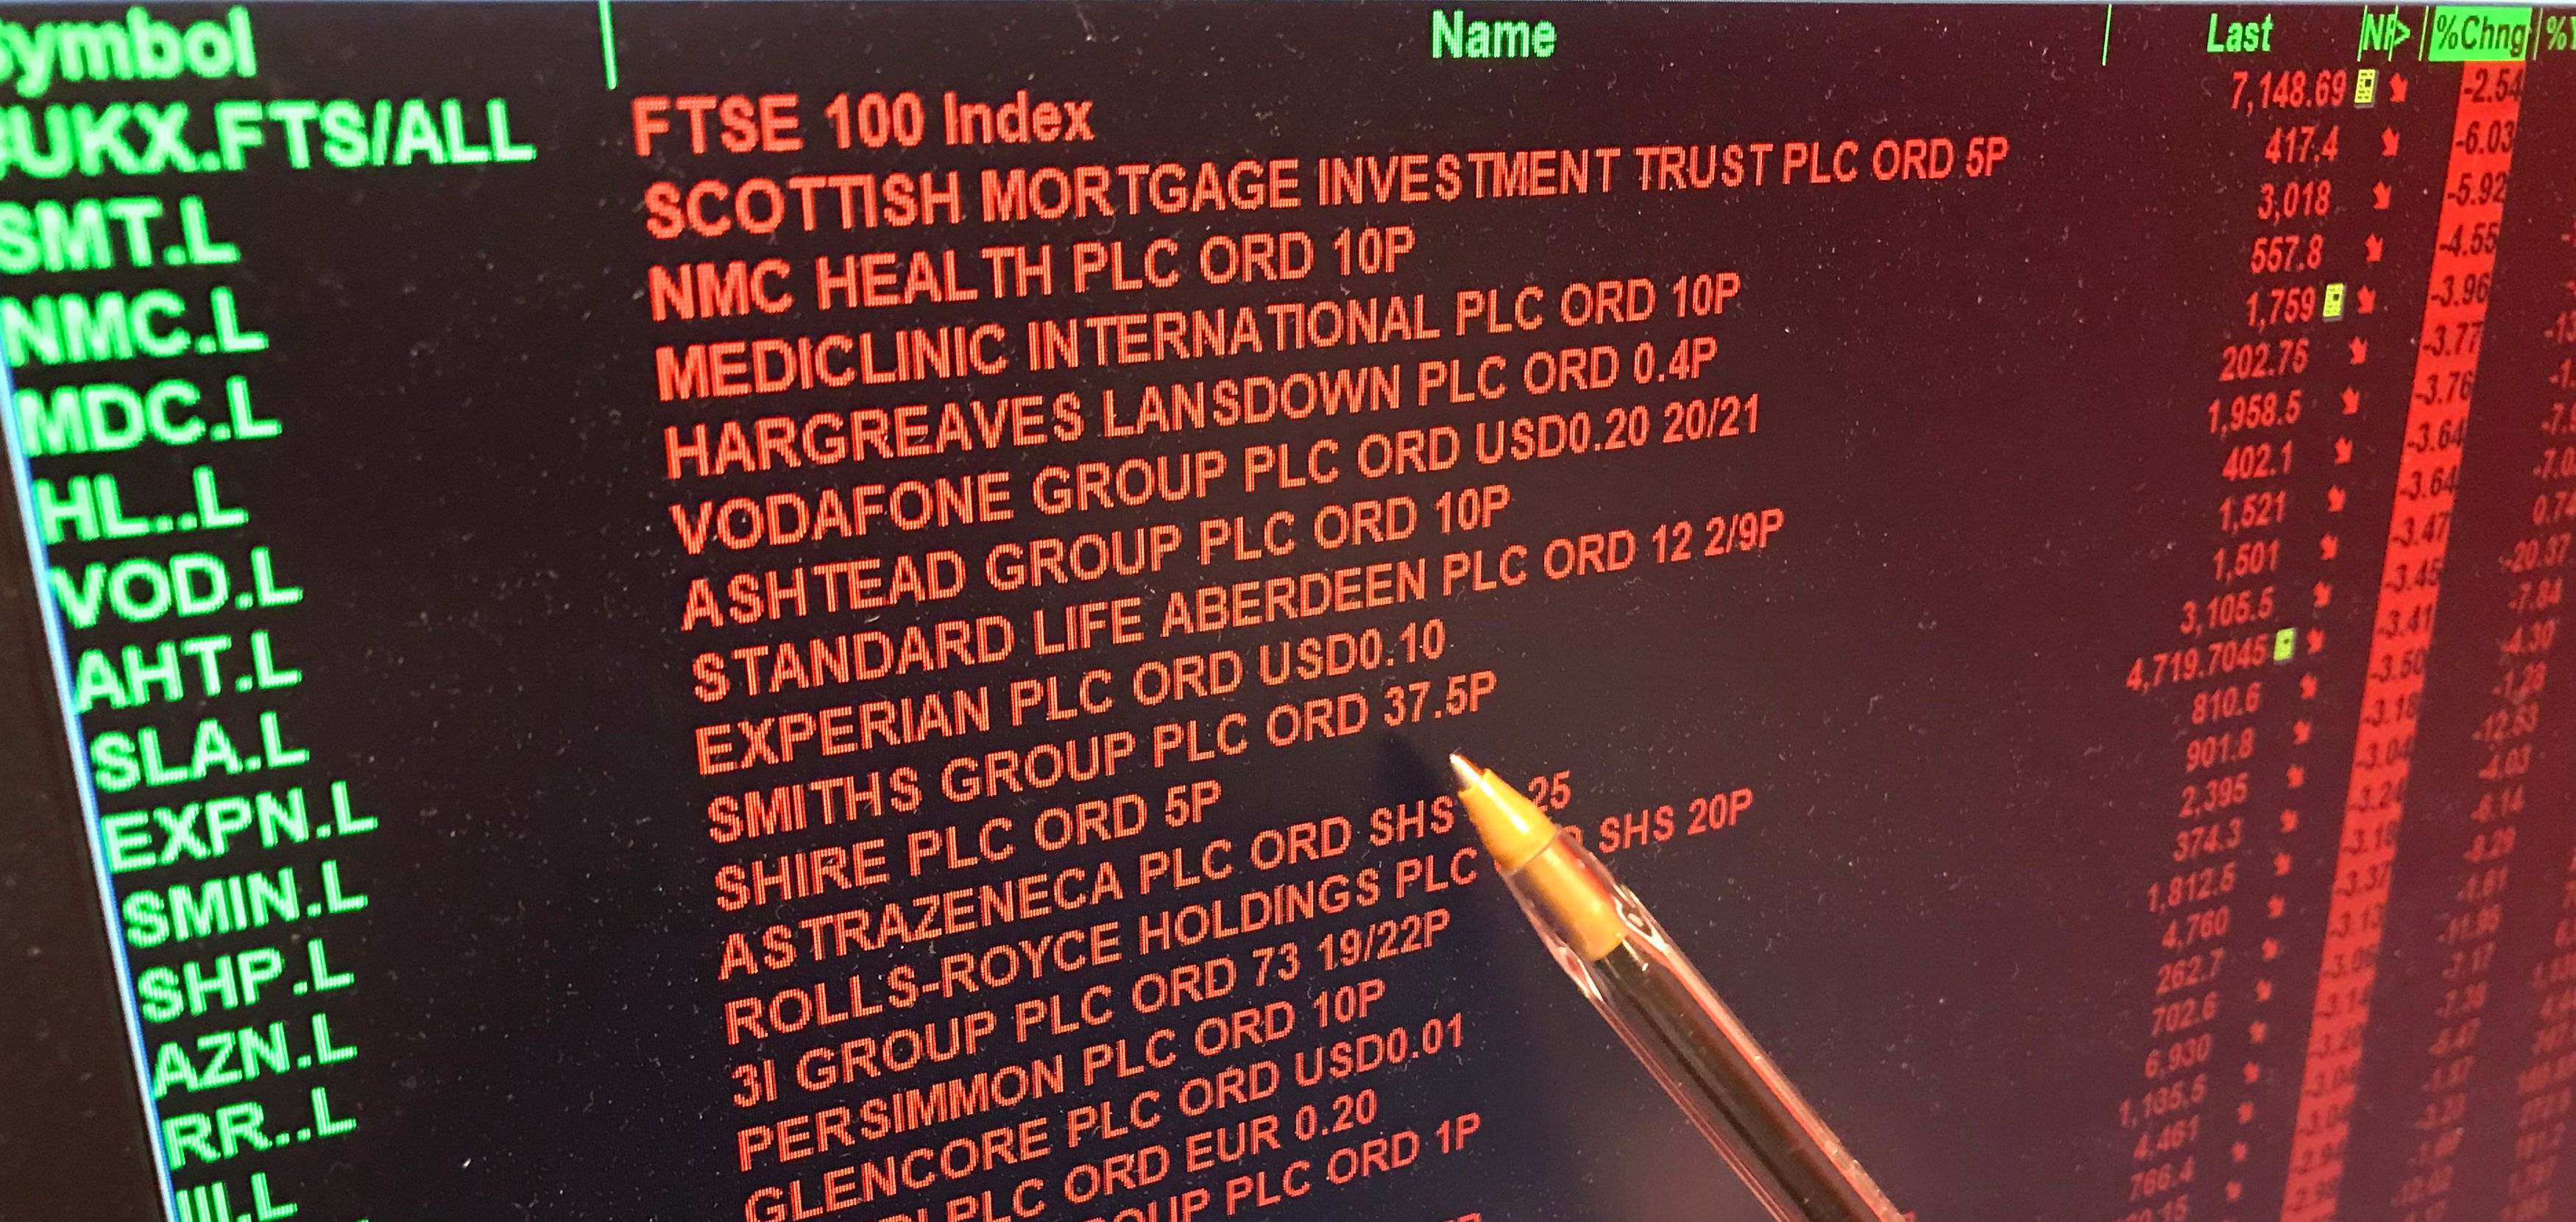 A screen showing the prices on the London Stock Exchange turns red as the FTSE 100 Index crashed on opening by more than 230 points to 7,104.94 as inflation fears continue to rock global markets. (Photo by PA Images via Getty Images)